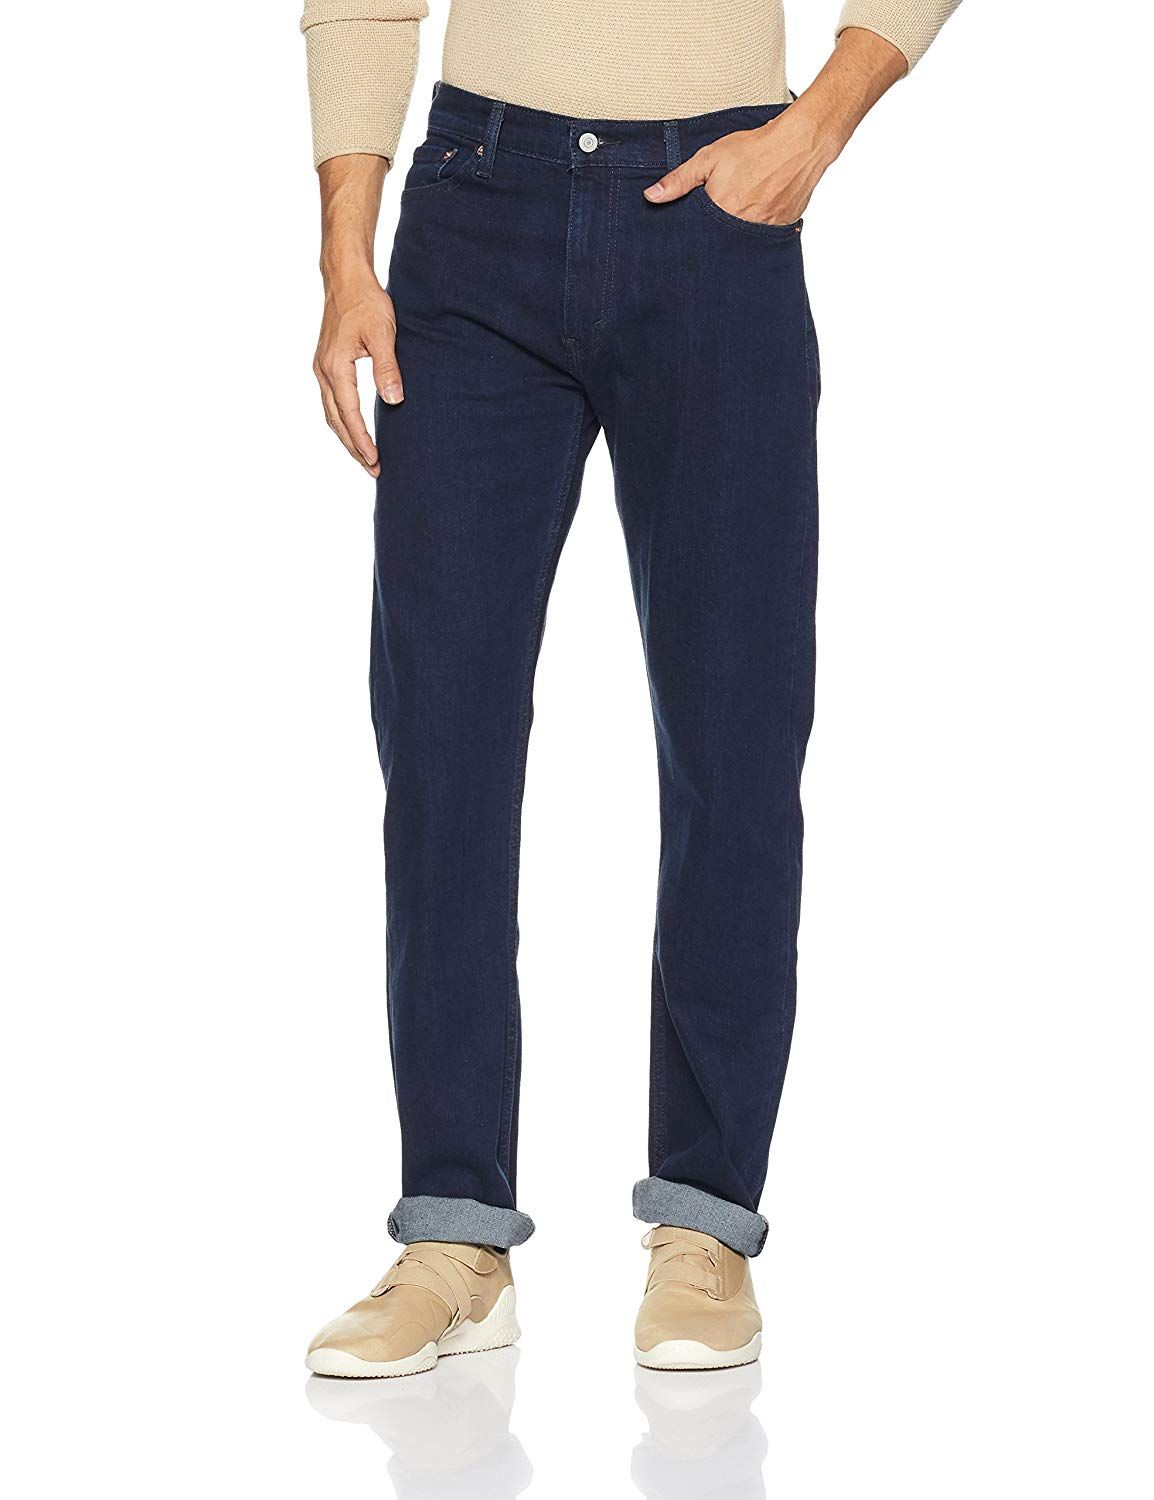 36351d1e11a Levi's Men's (513) Slim Straight Fit Jeans: Amazon.in: Clothing &  Accessories